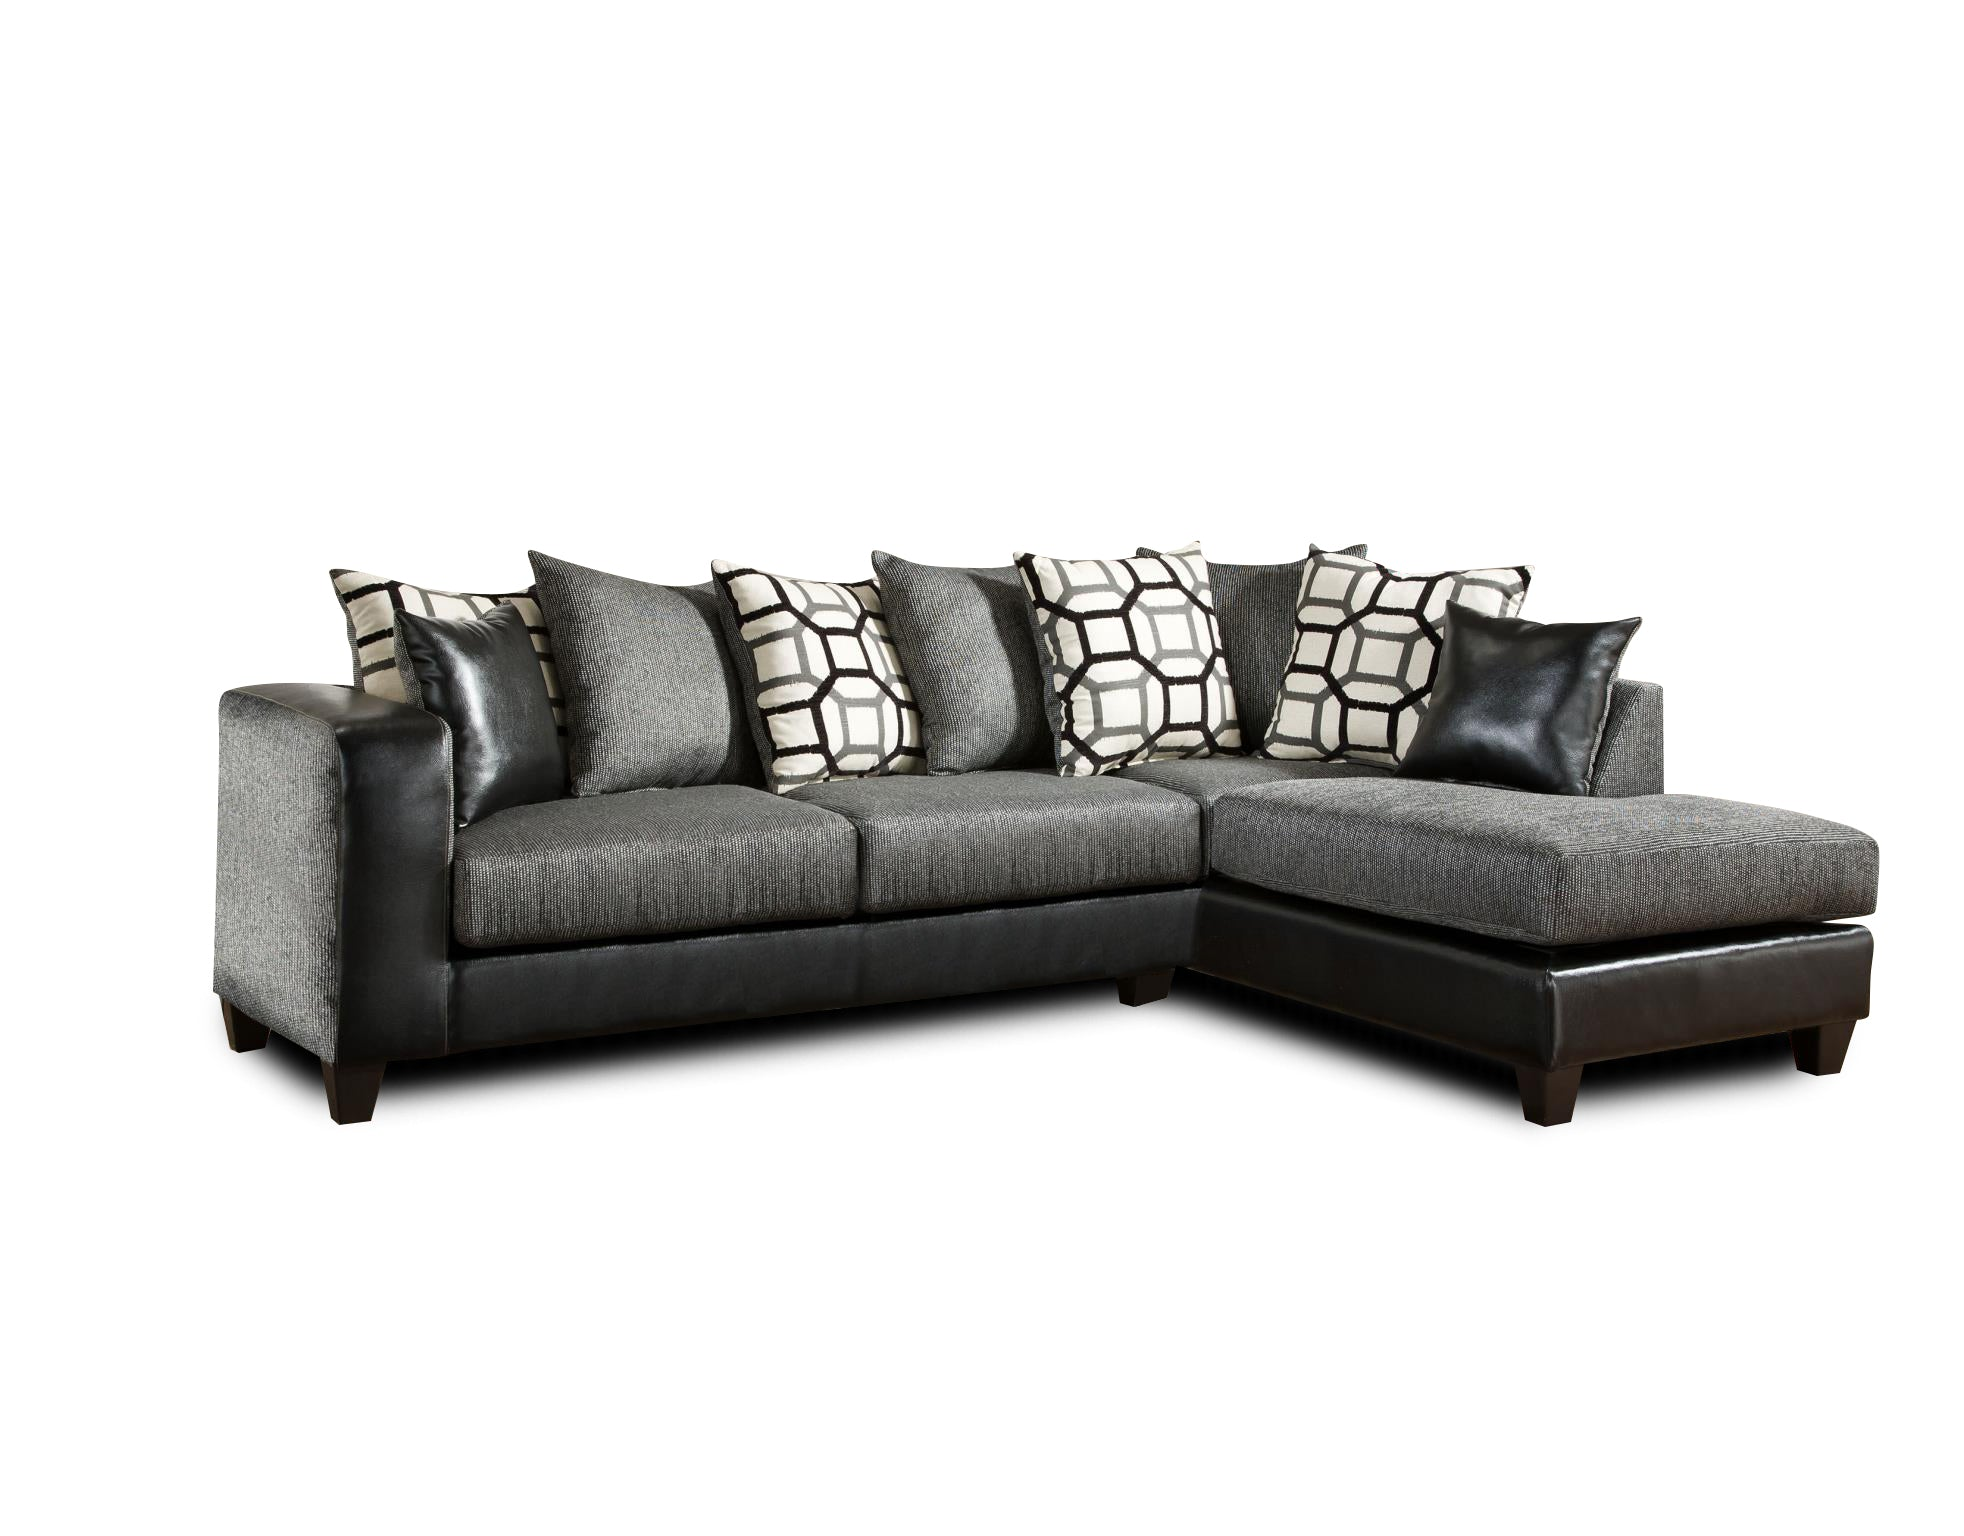 "110"" X 73"" X 37"" Object Charcoal Dempsey Blacke 100% Polyester Sectional"